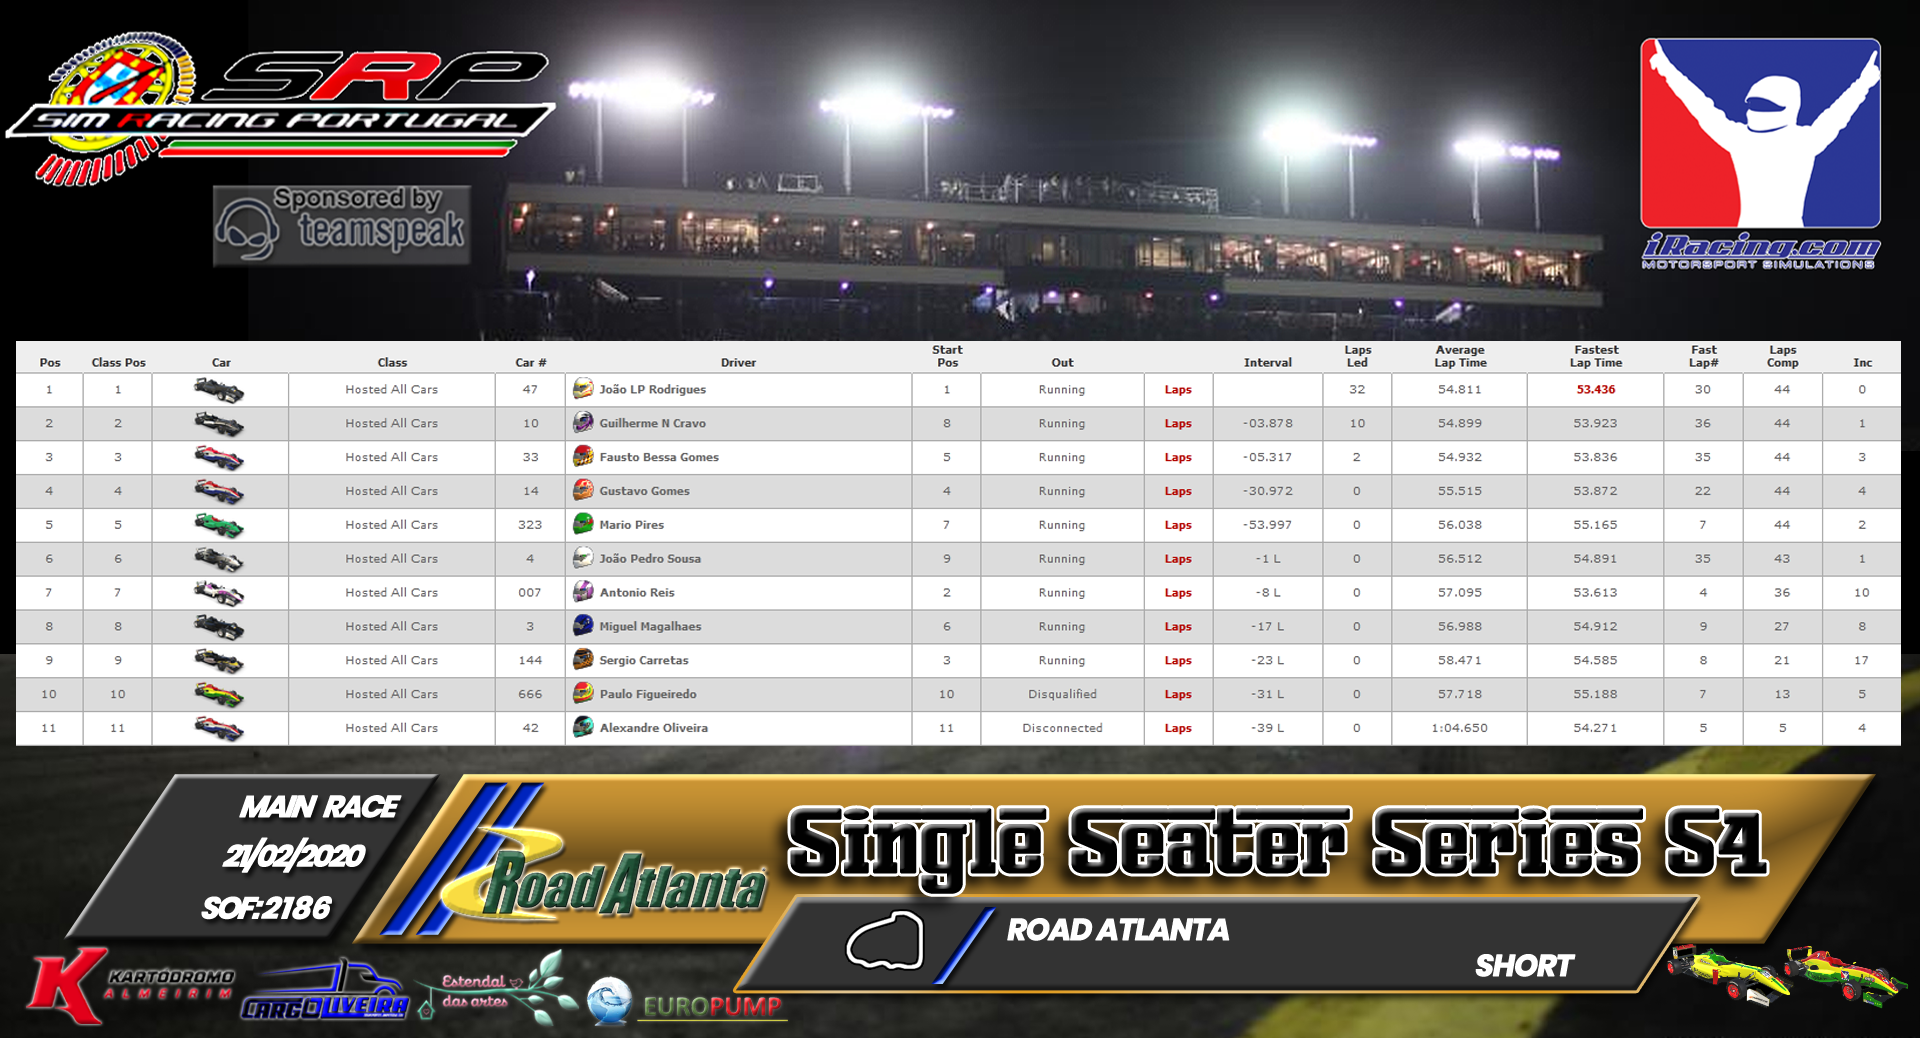 [Image: RaceResults2020M-1.png]